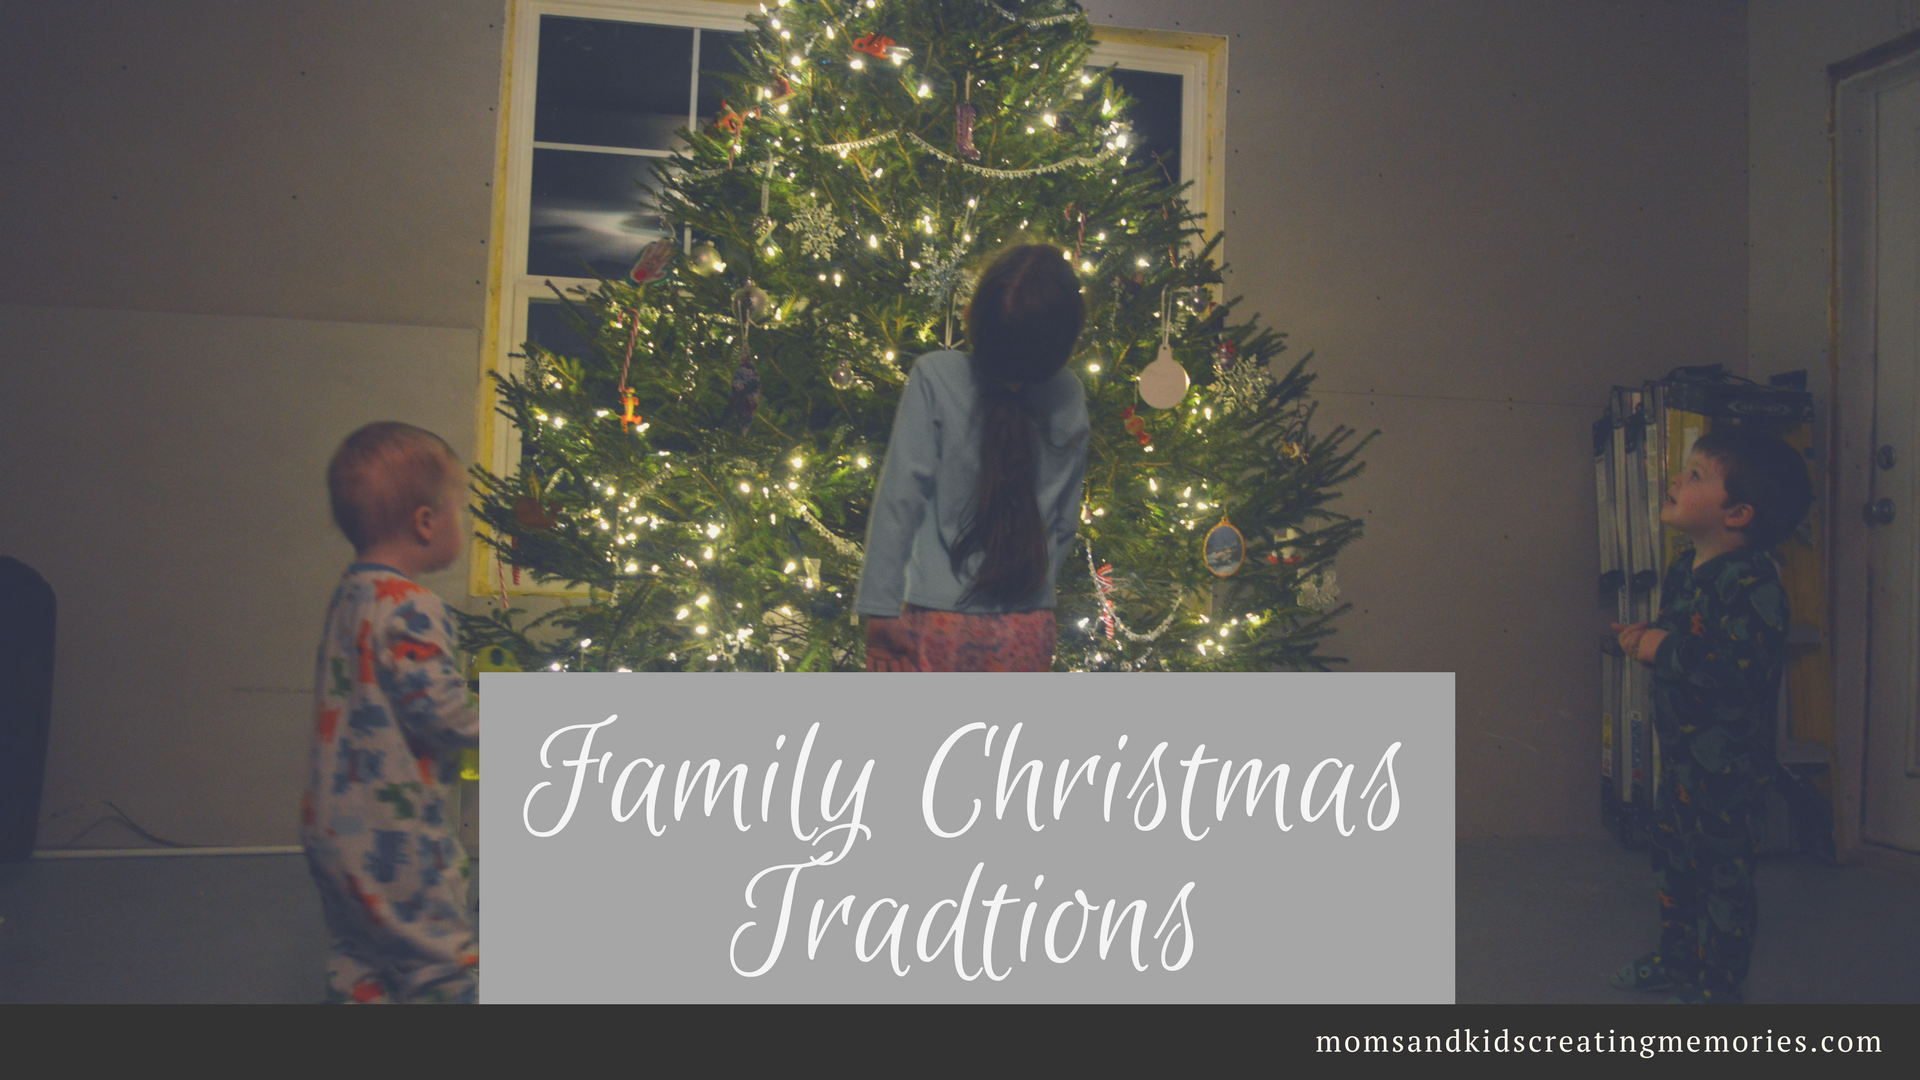 Family Christmas Traditions - Traditions are something that I love to have now that we have kids and I am sharing some of ours along with a freebie that gives you some ideas of things to do with your family this Christmas to create some memories.